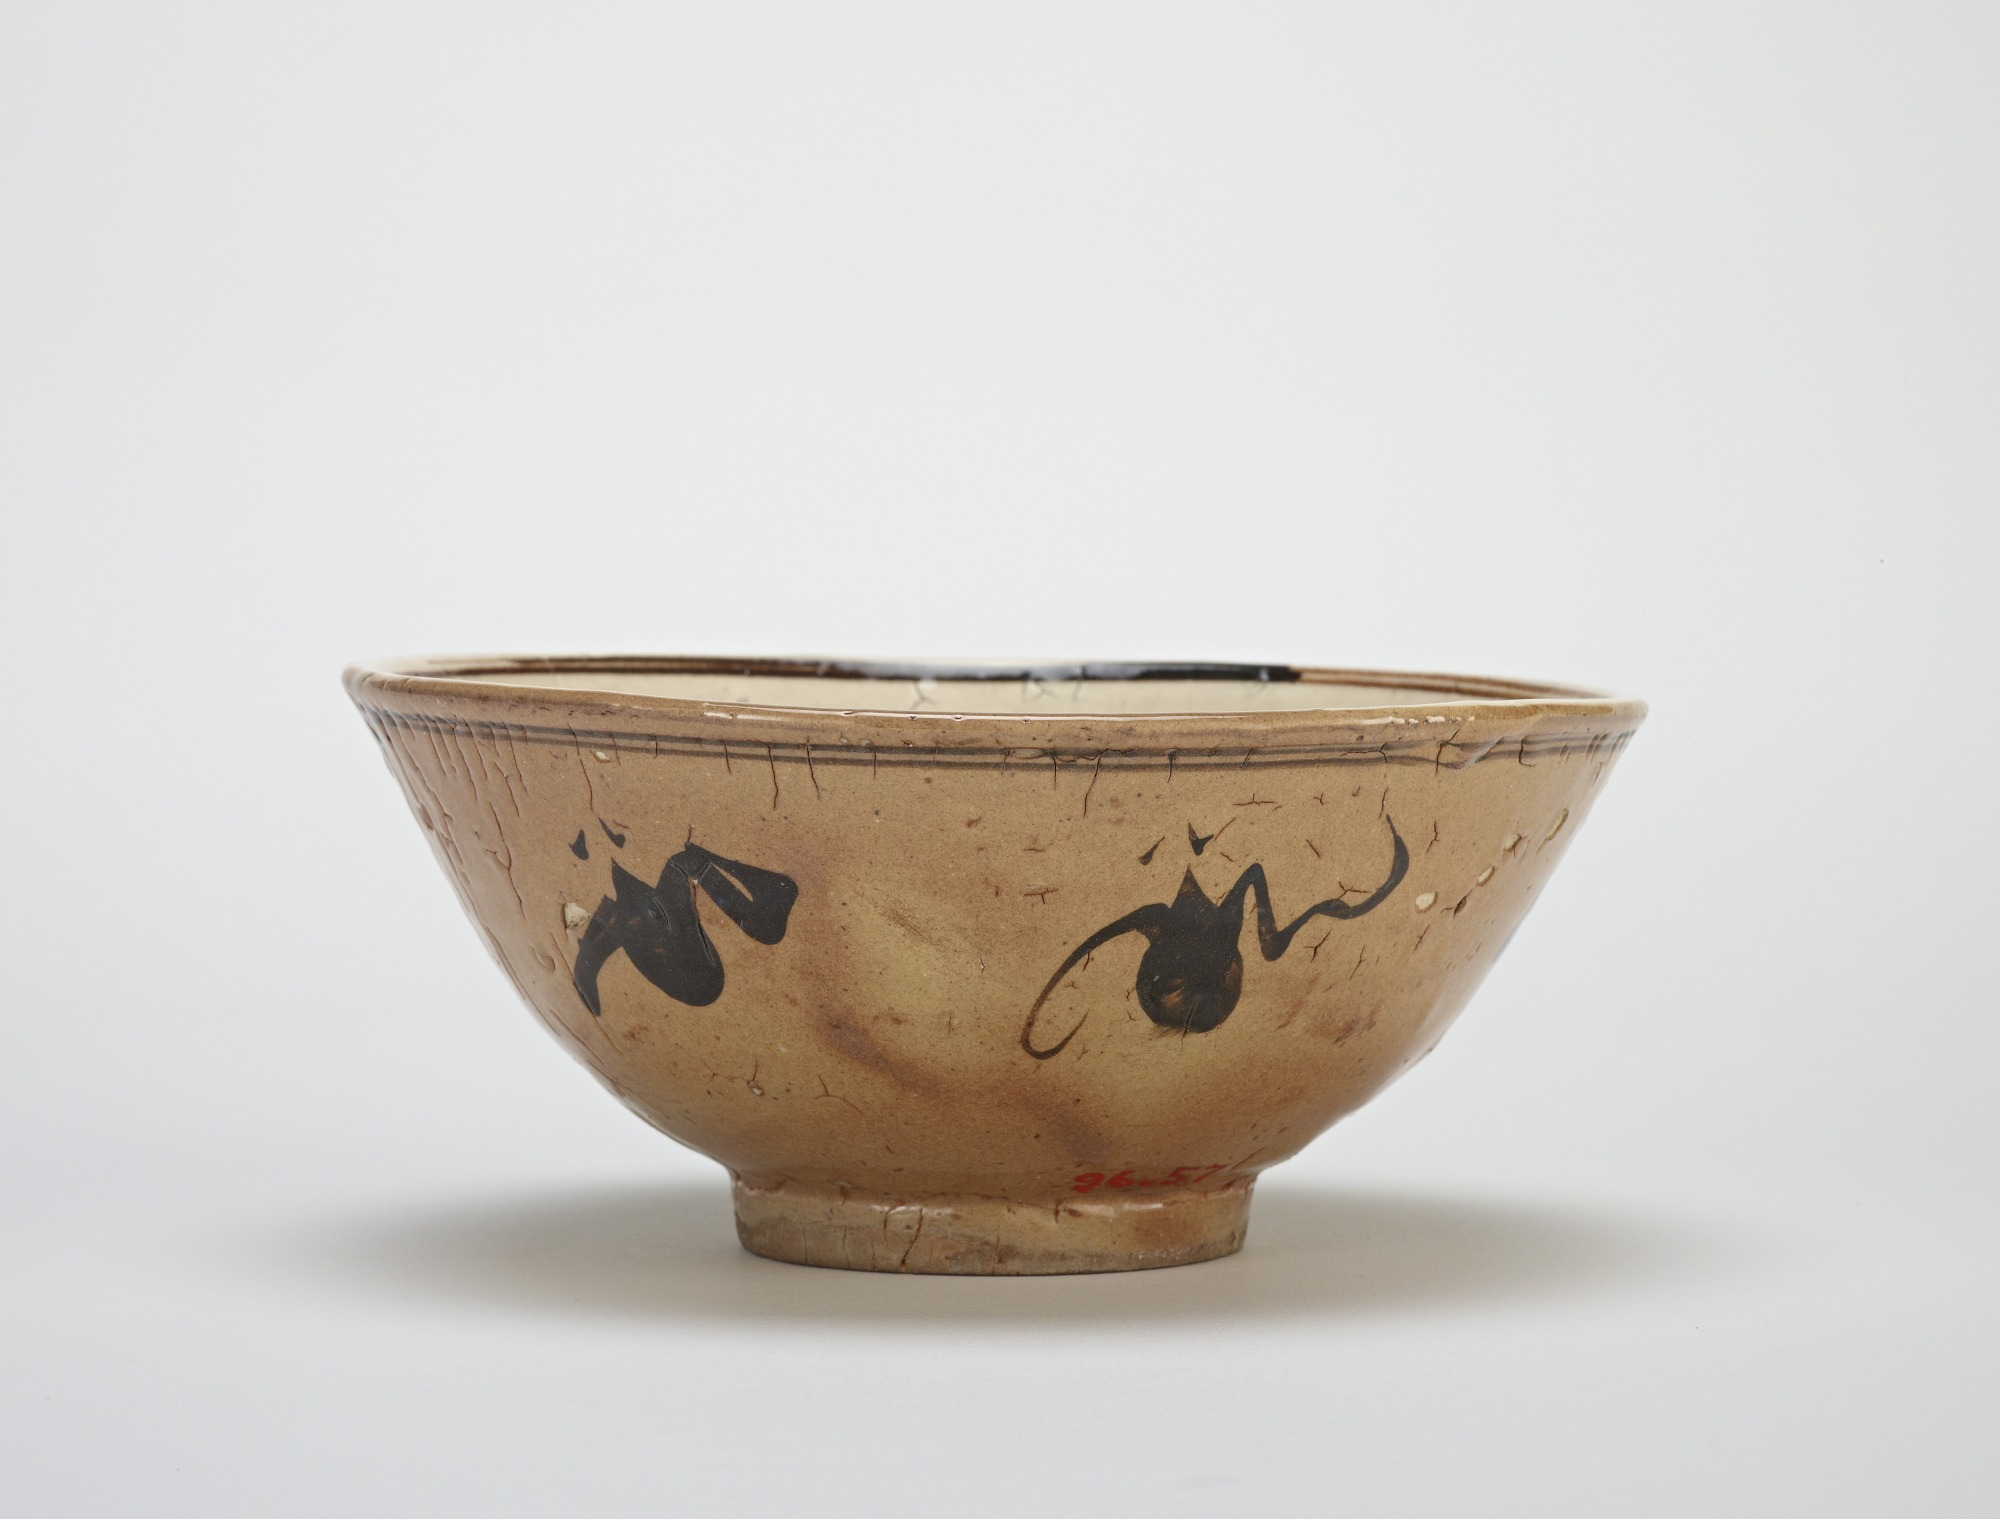 profile: Bowl, Cizhou-type ware